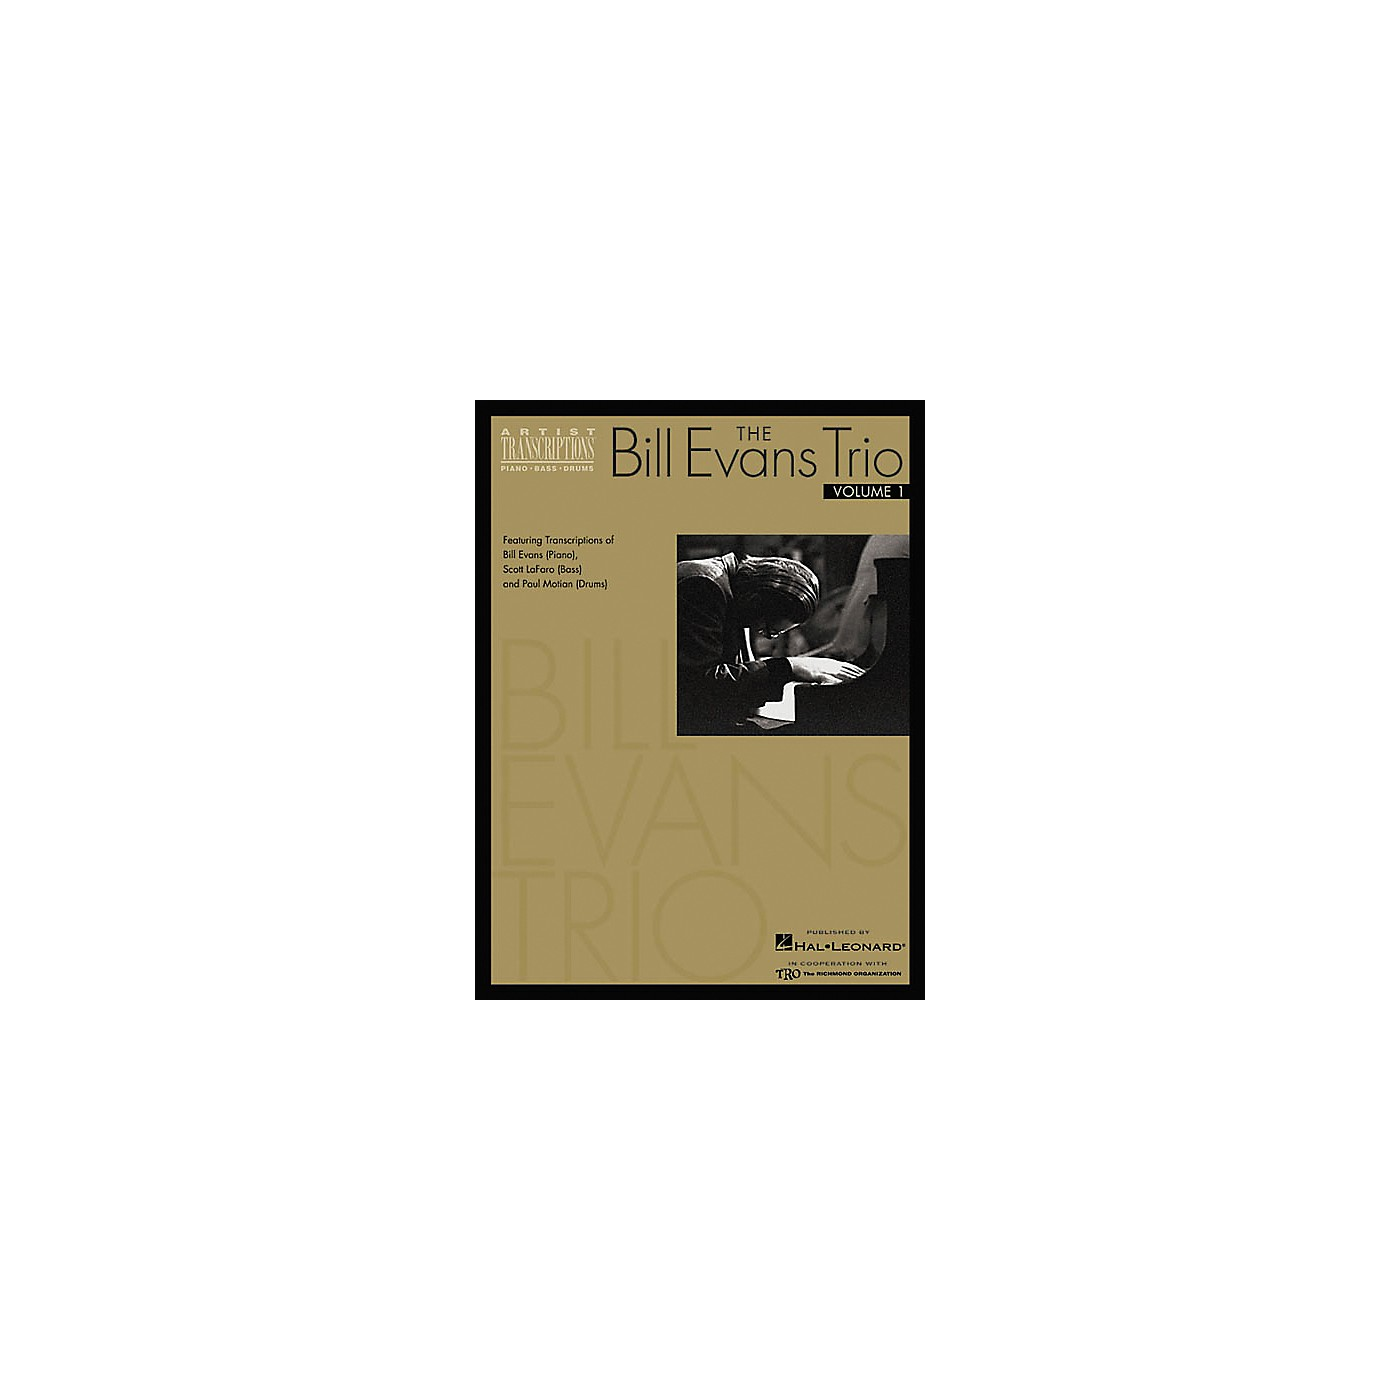 Hal Leonard The Bill Evans Trio Volume 1 1959-1961 Transcribed Scores Book thumbnail